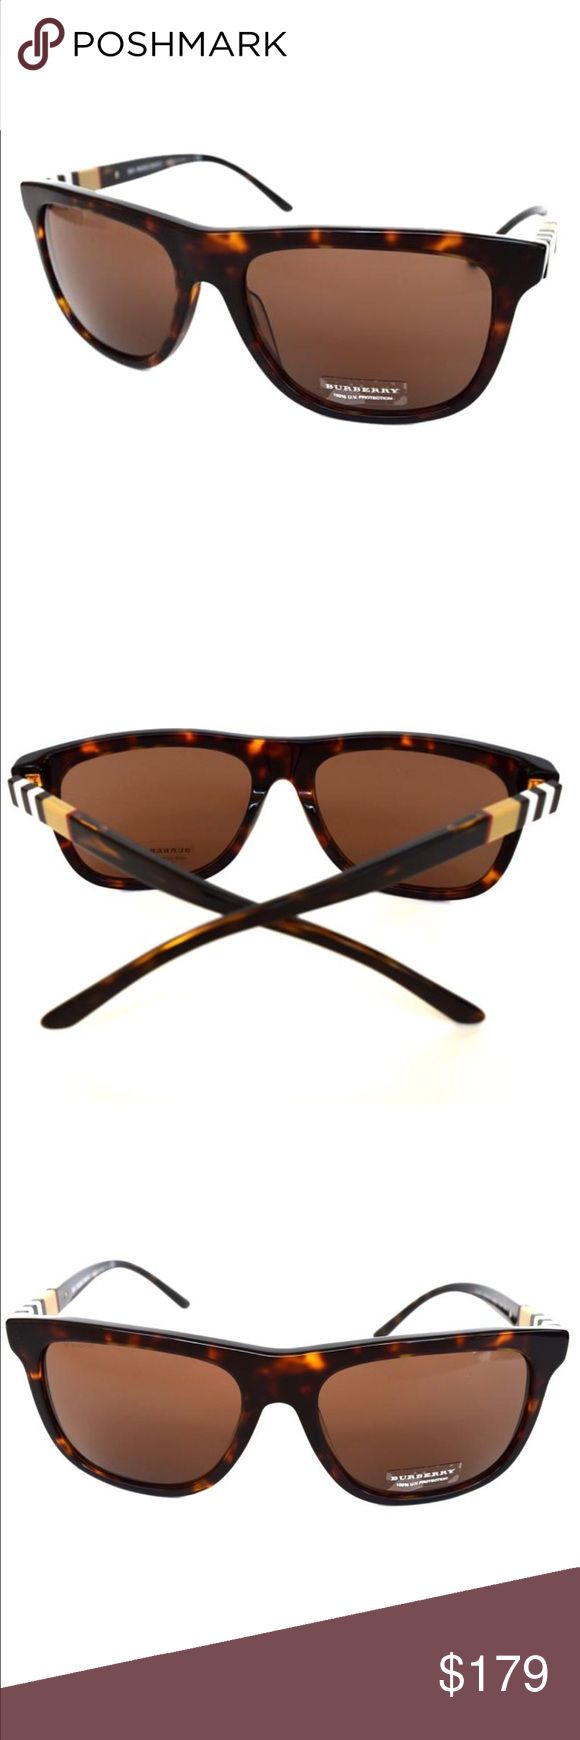 Burberry Sunglasses Tortoise Women's Sunglasses Burberry Sunglasses Tortoise Women's Sunglasses  100% Authentic Made in Italy  58-17-140  Sunglasses come with a Burberry Case, Cloth, Papers and Gift Box Burberry Accessories Sunglasses